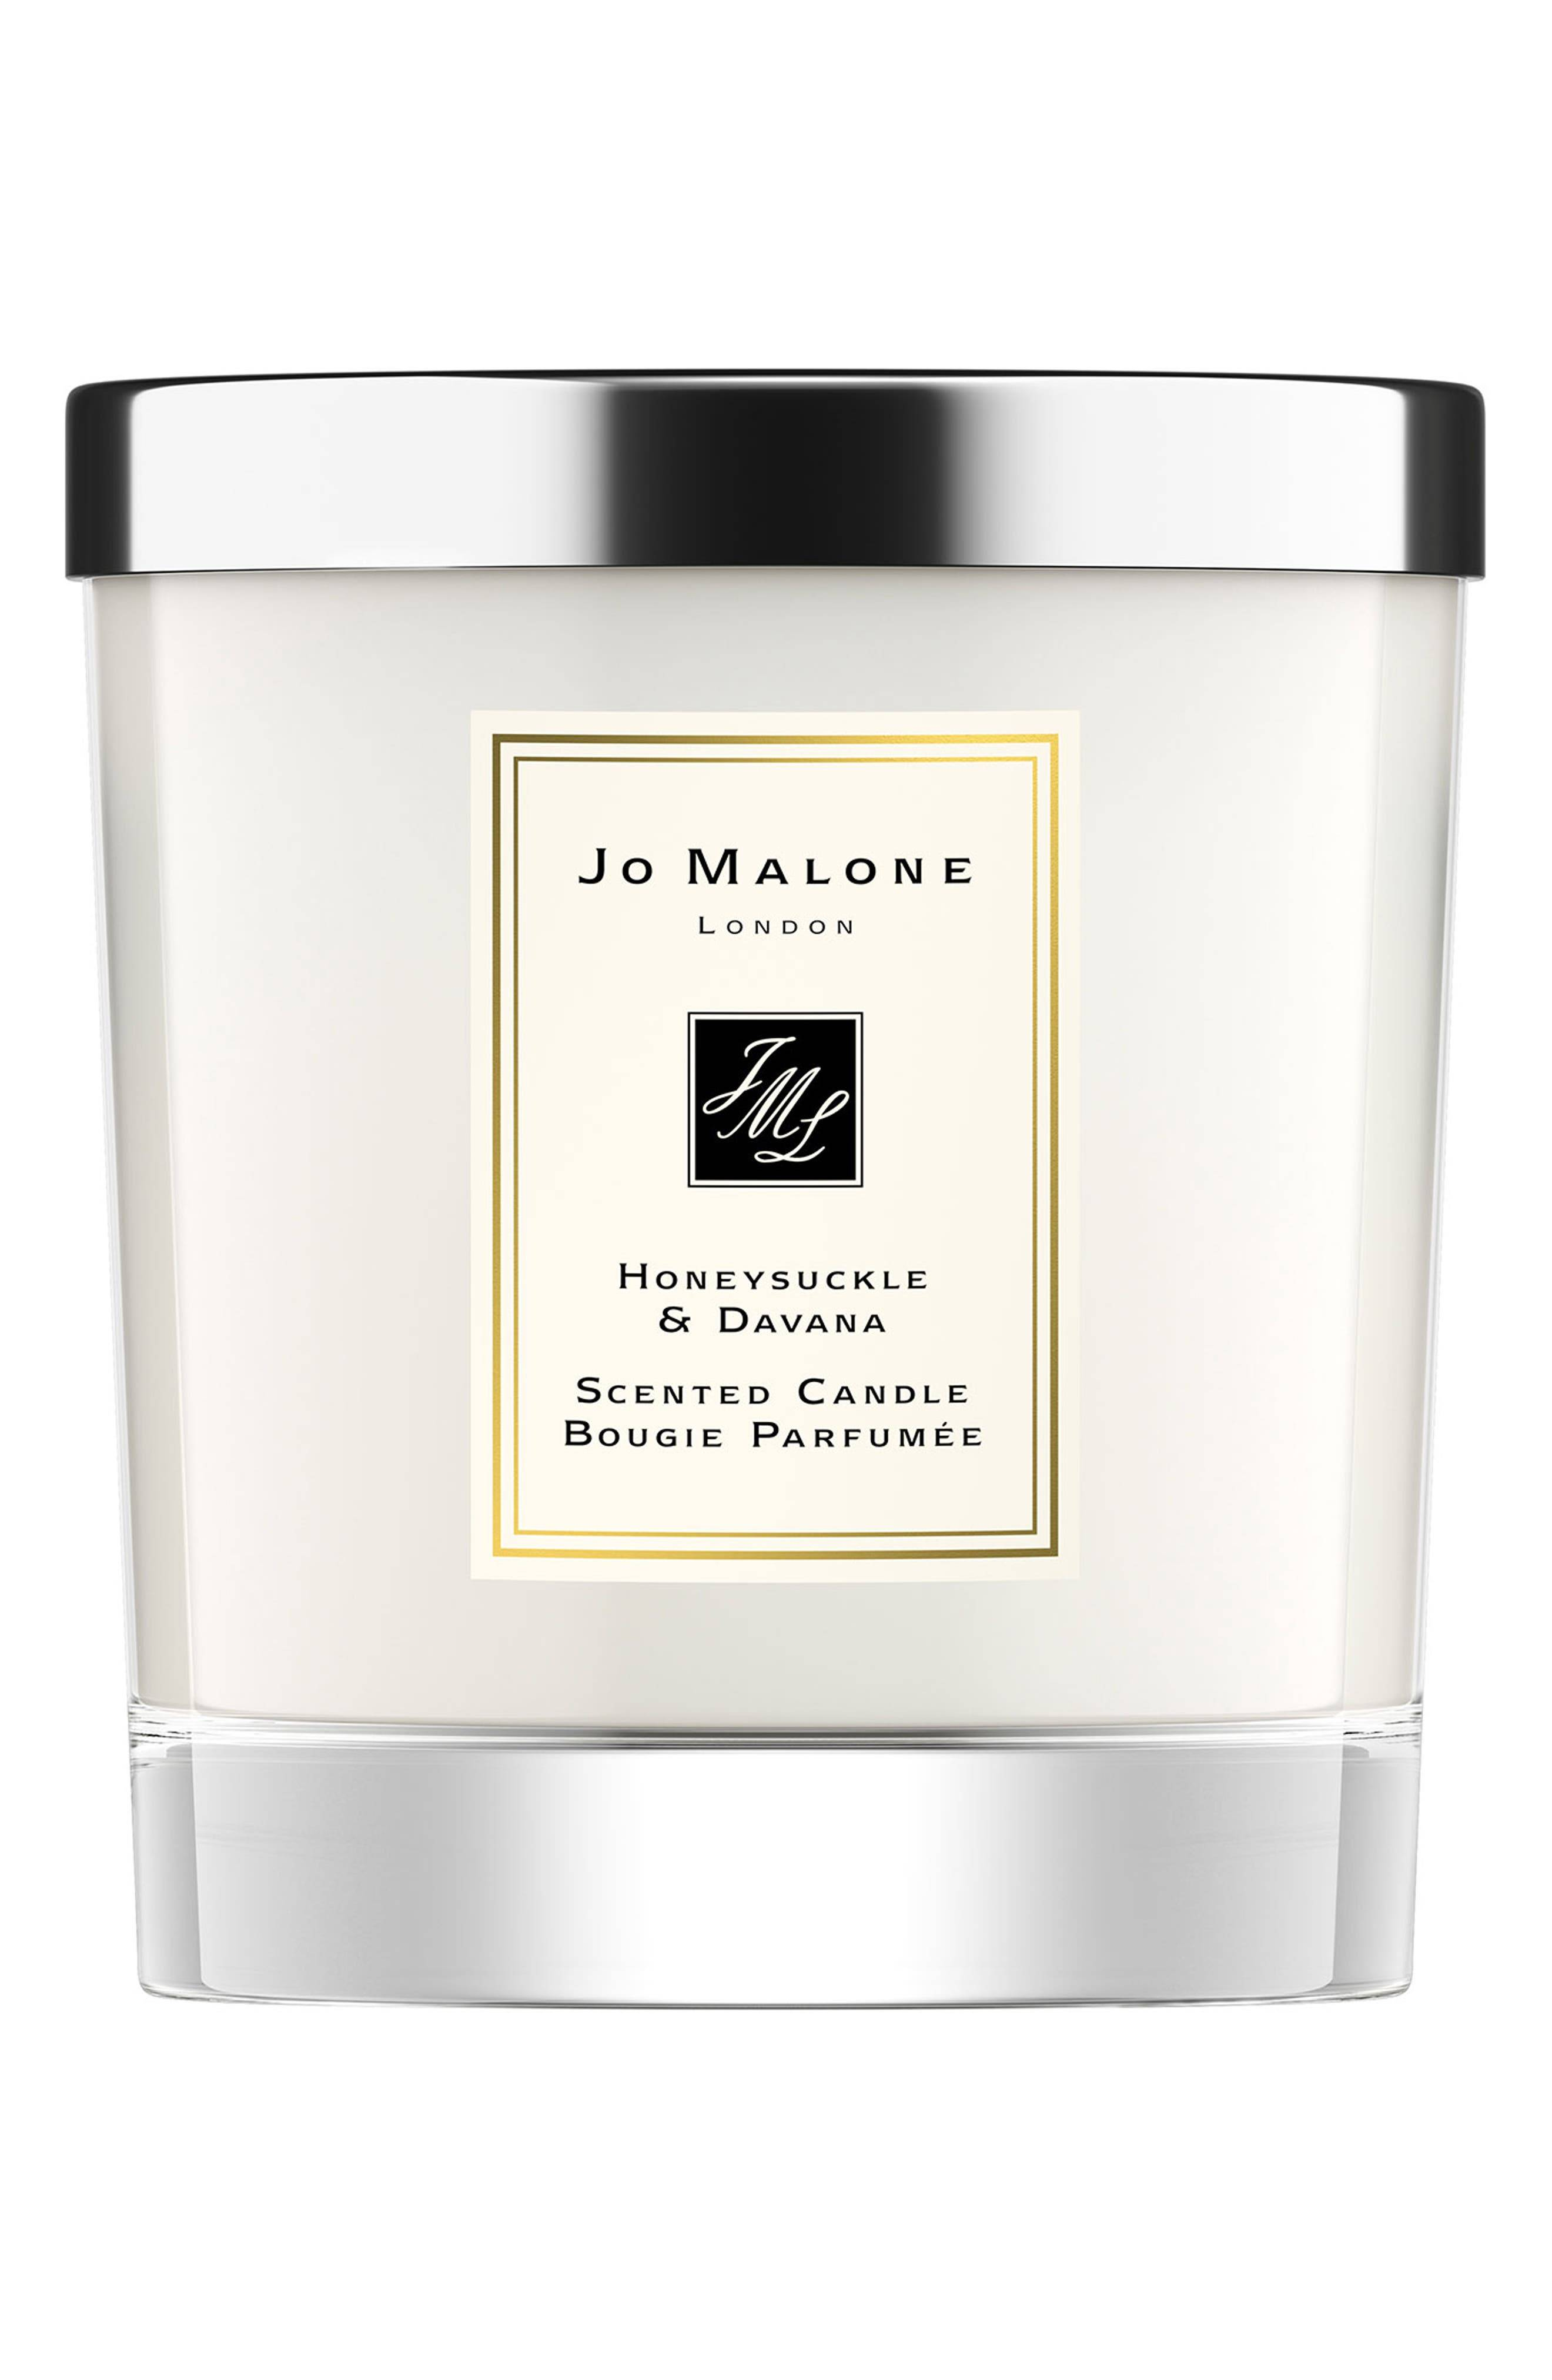 Jo Malone LondonTM Jo Malone London(TM) Honeysuckle & Davana Scented Home Candle, Size One Size - None